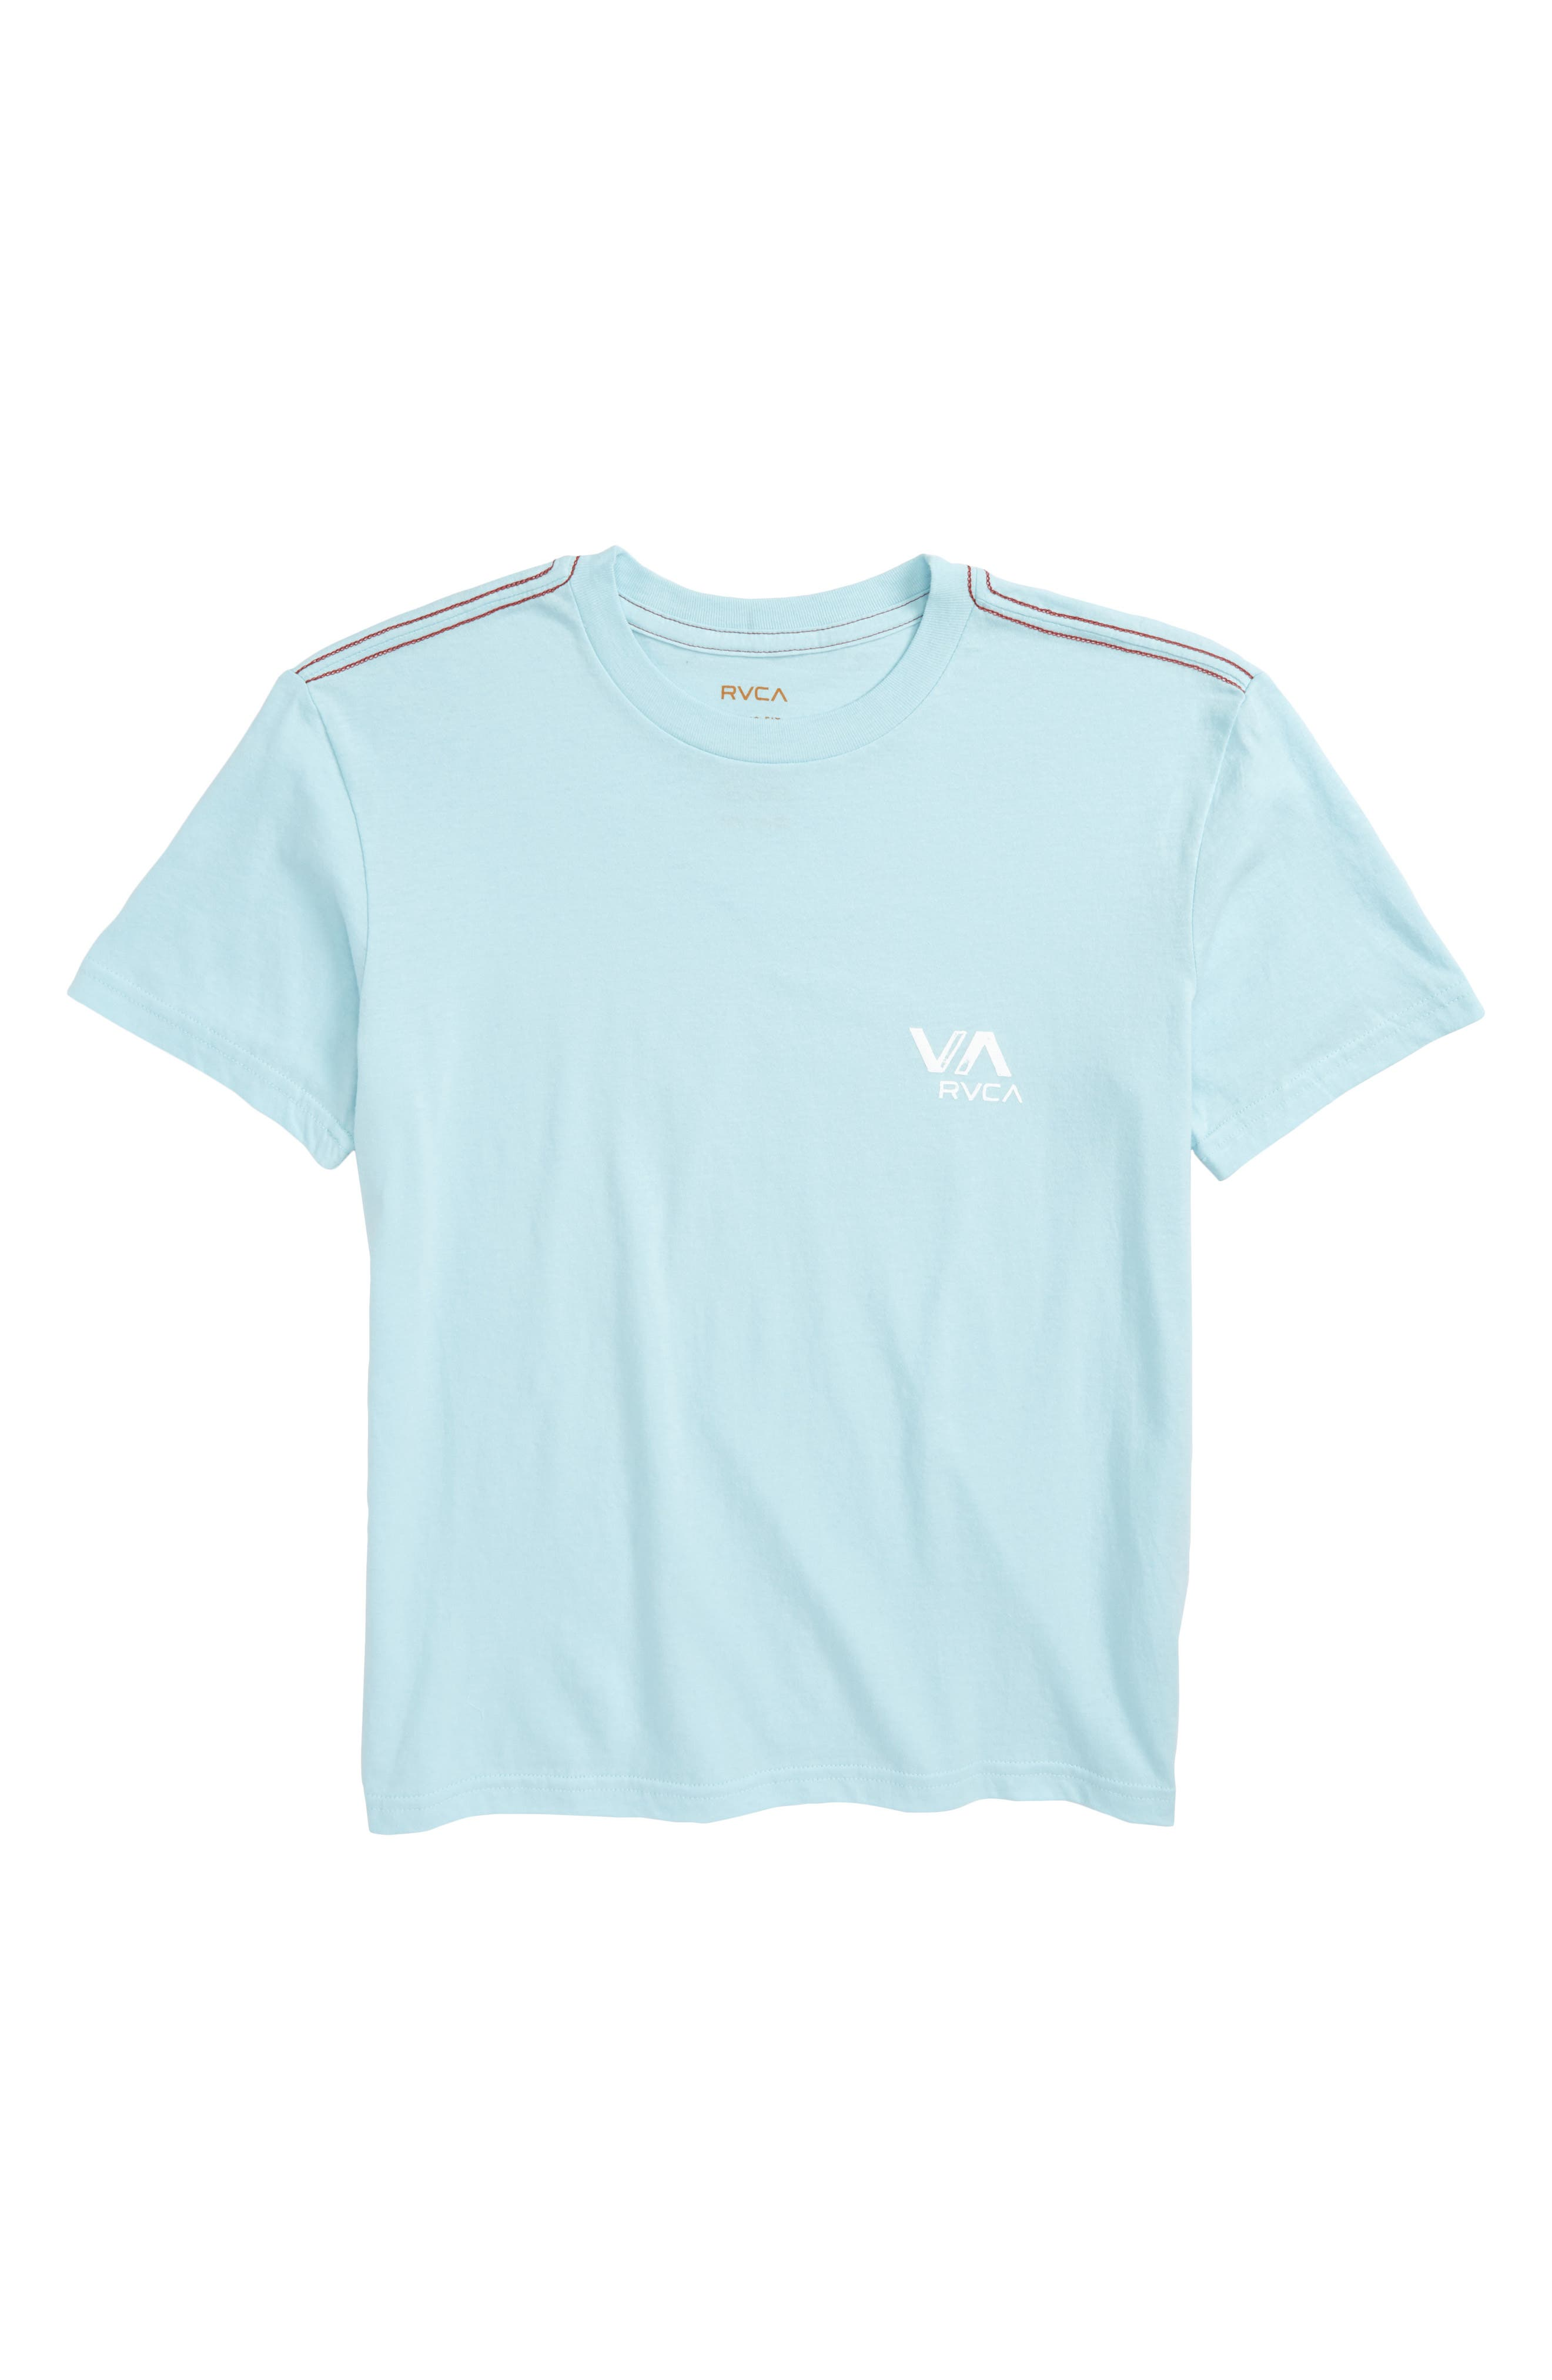 RVCA VA Ink T-Shirt (Big Boys)